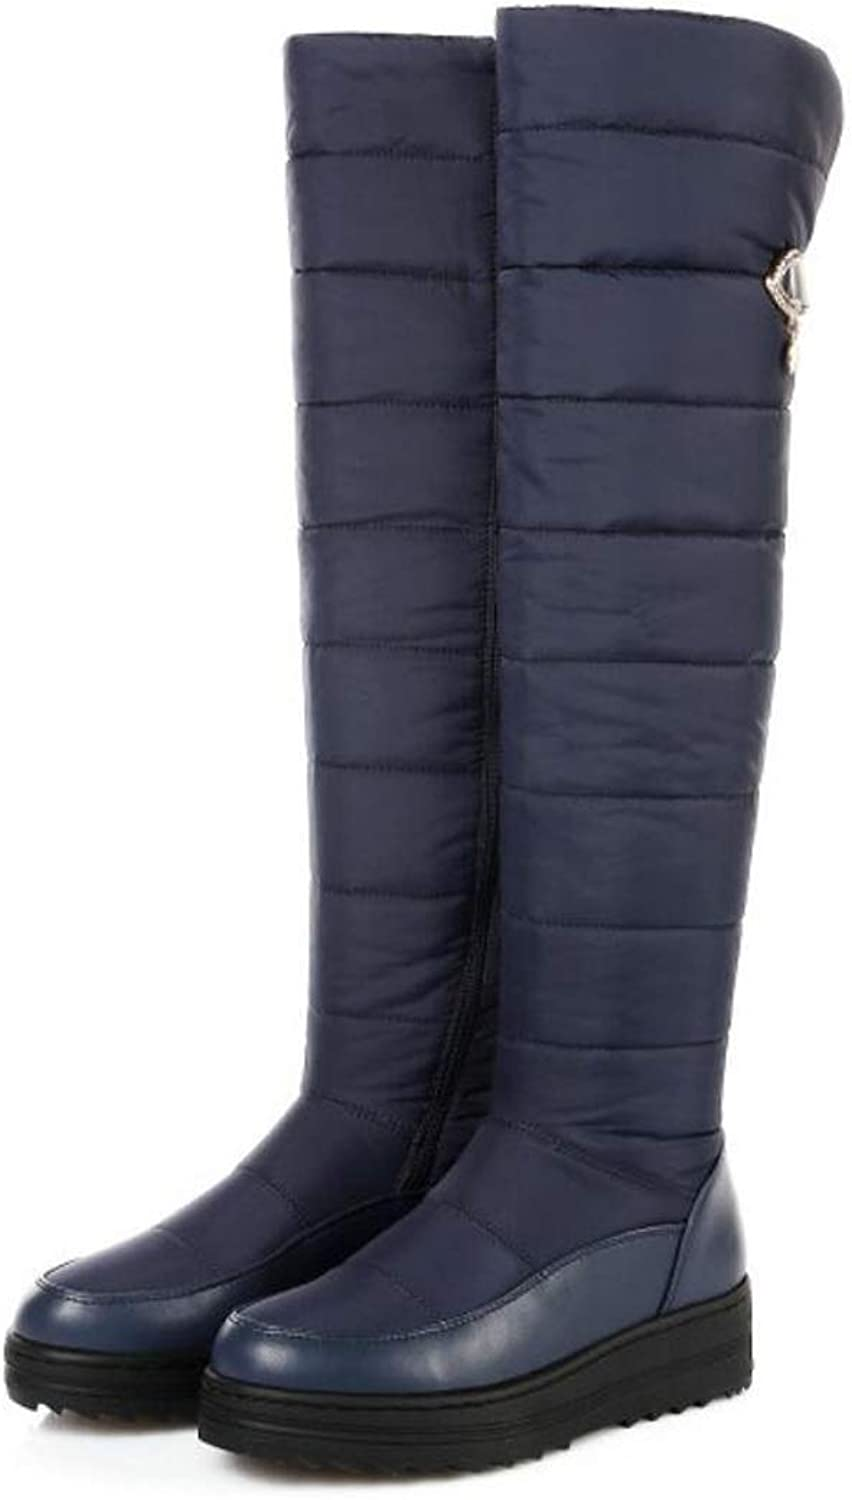 Women Winter Boots Knee High Snow Boots Round Toe Warm shoes Ladies Fashion Waterproof Boots (Black bluee)